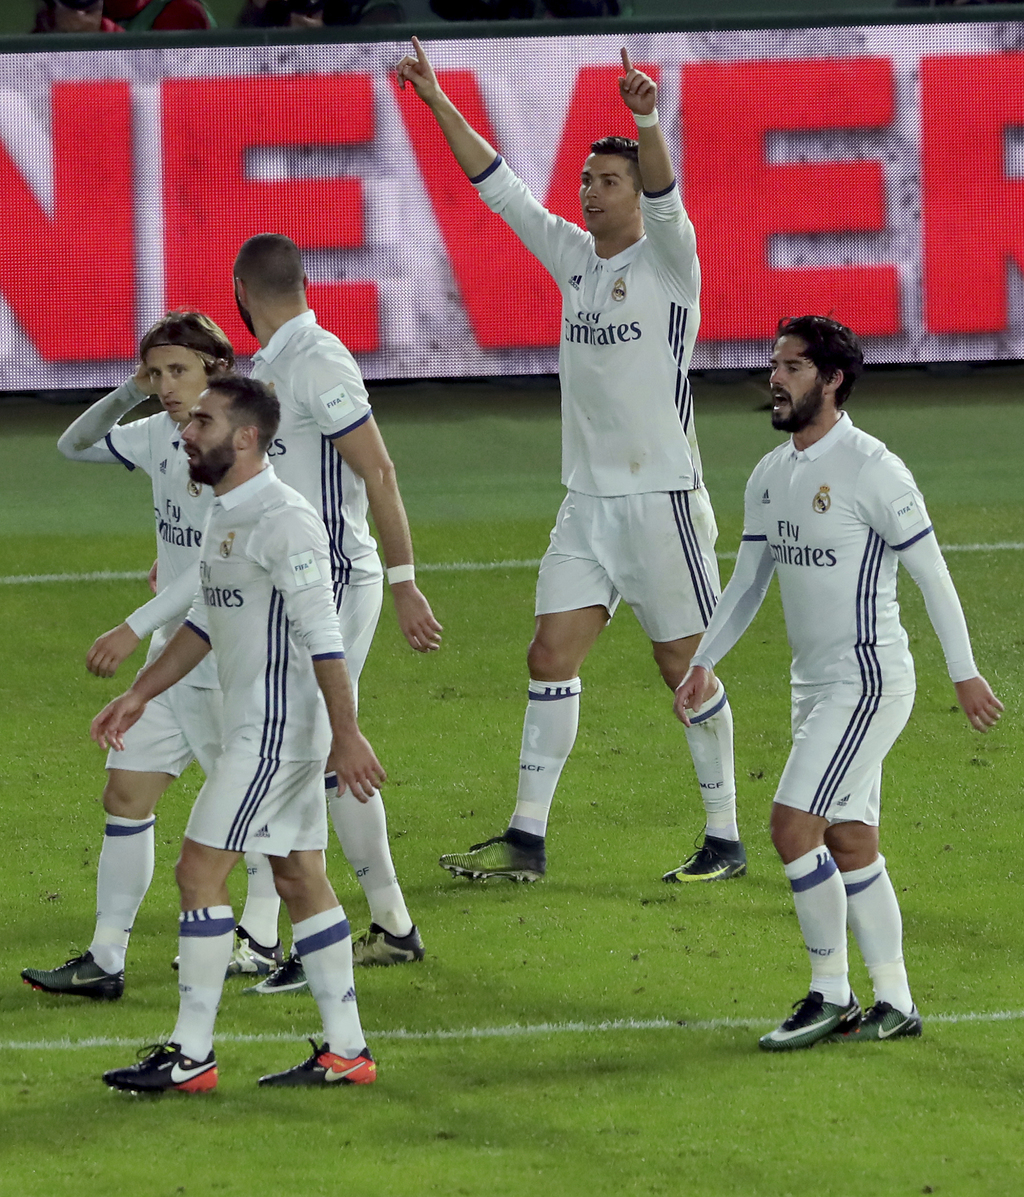 Real Madrid's Cristiano Ronaldo gestures after scoring his third goal against Kashima Antlers during the final of the FIFA Club World C...